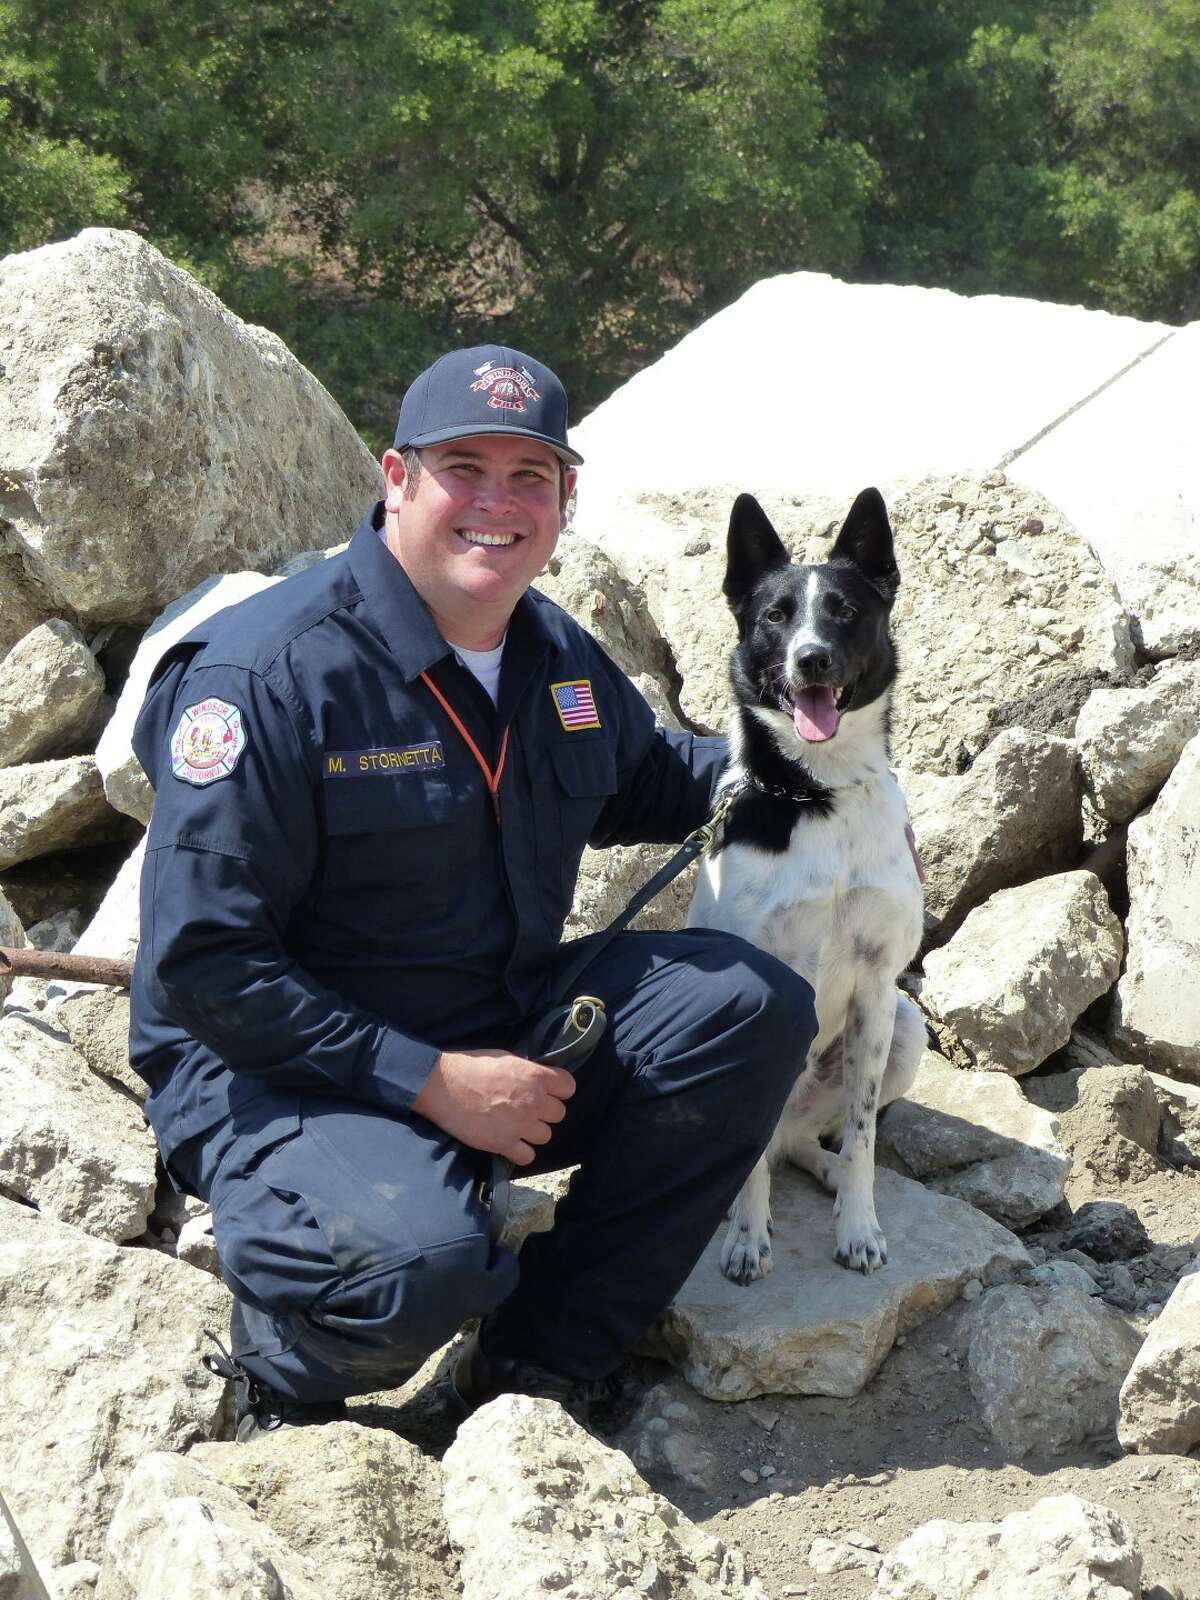 Rocket and his partner, firefighter Mike Stornetta of the Windsor Fire District.